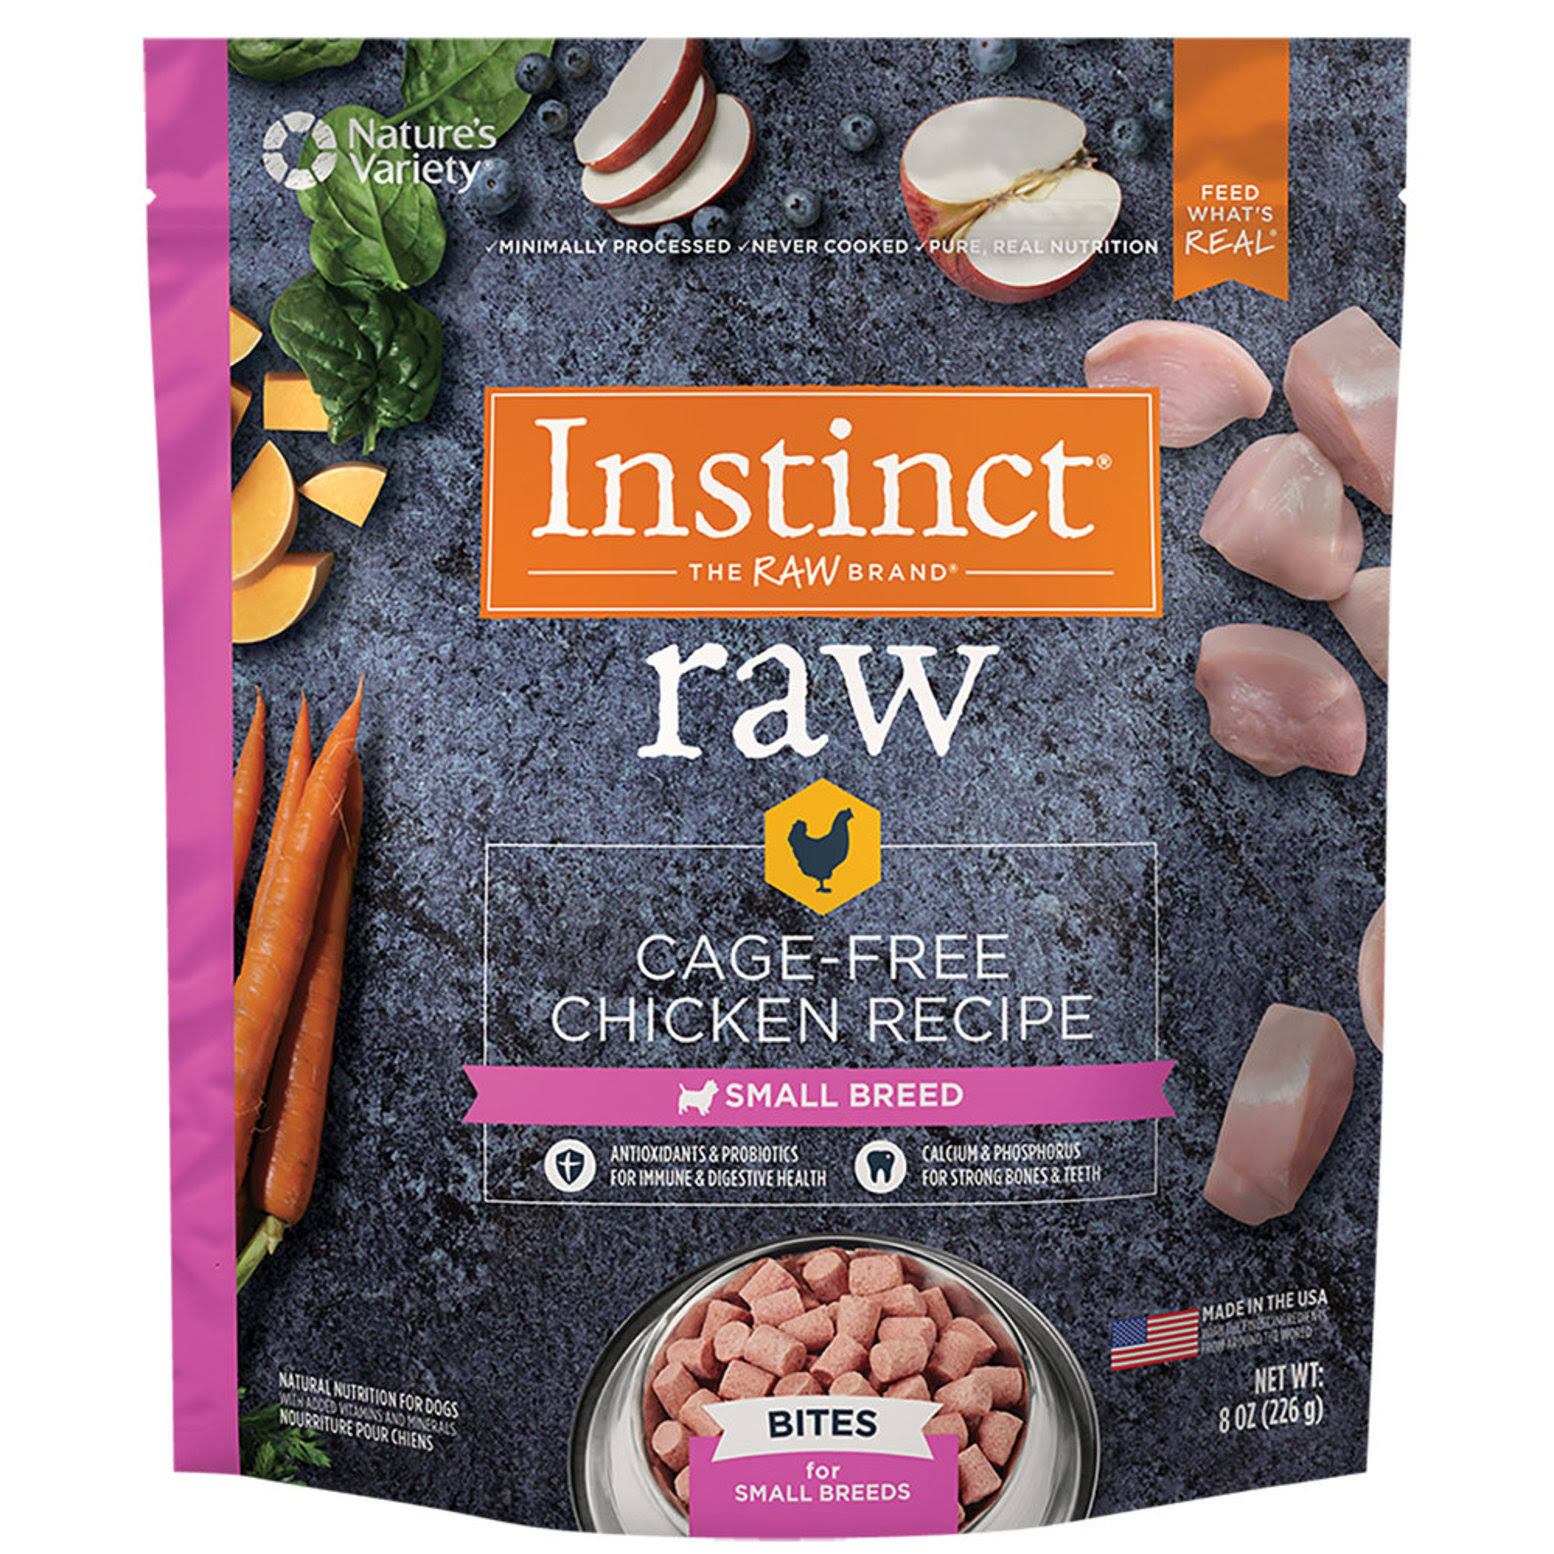 Instinct Frozen Raw Bites Small Breed Grain-Free Cage Free Chicken Recipe Natural Dog Food by Nature's Variety, 8 oz. Trial Size